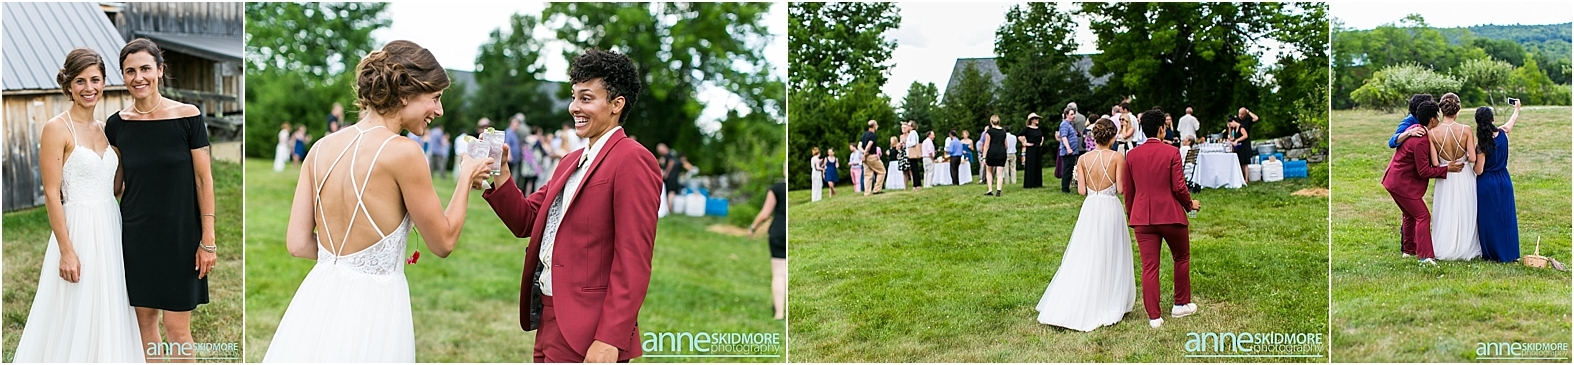 Maine_Barn_Wedding_0045